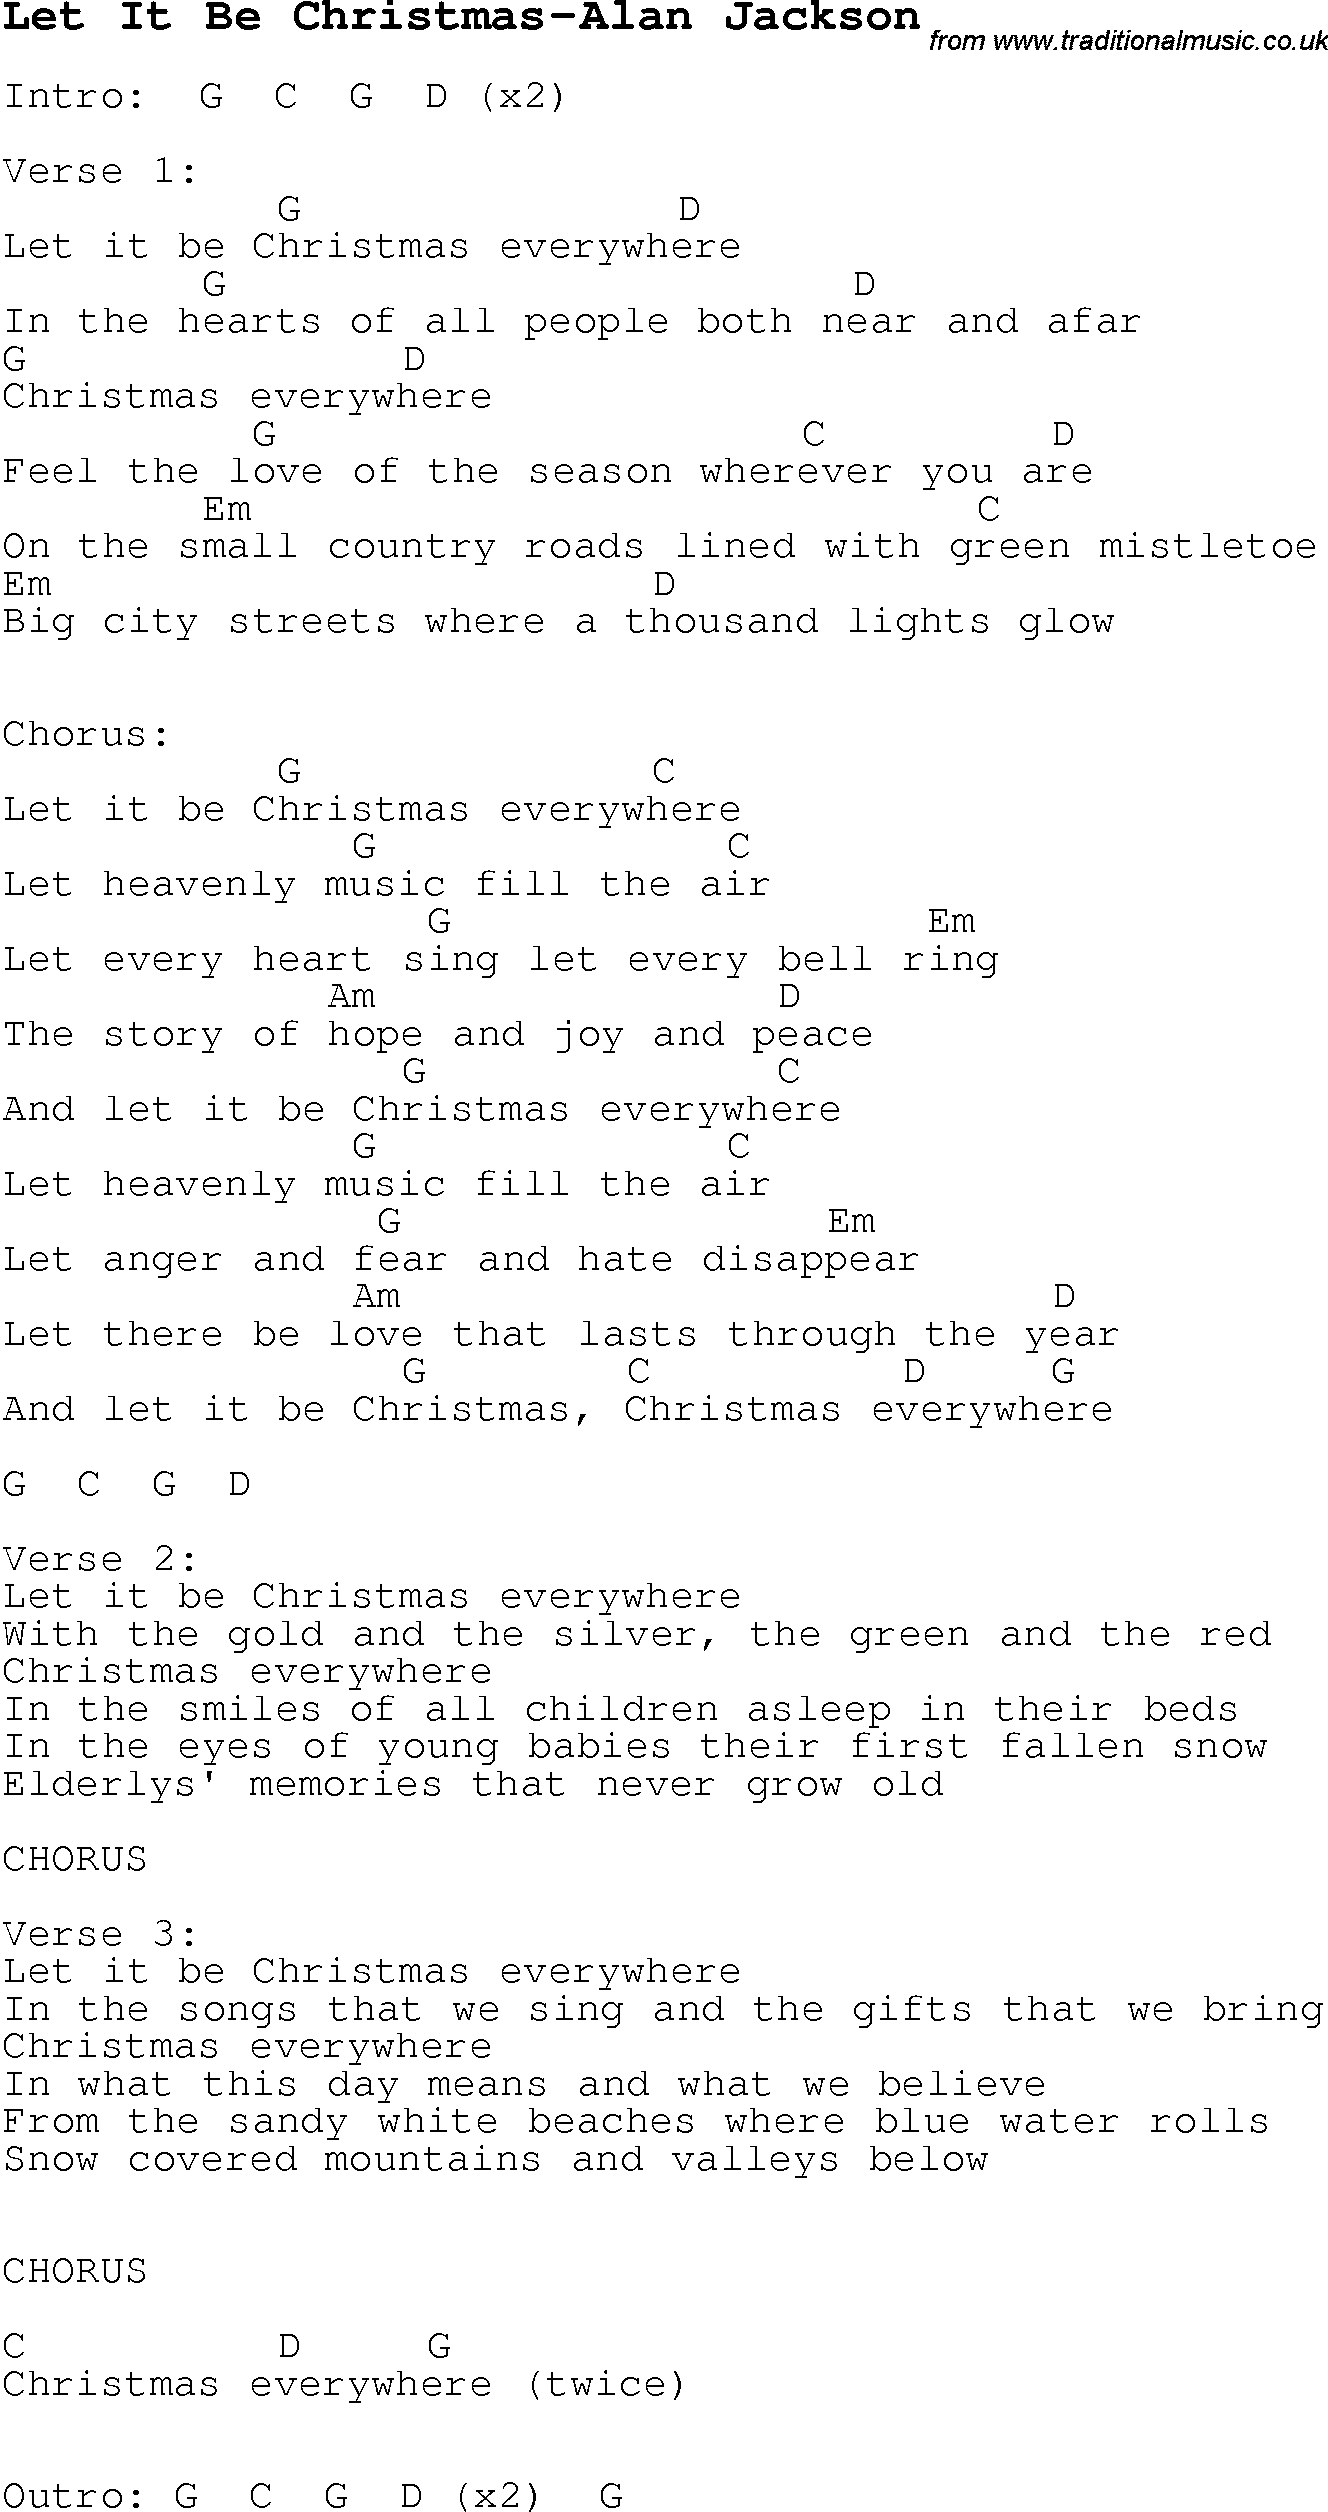 Christmas songs and carols lyrics with chords for guitar banjo christmas songs and carols lyrics with chords for guitar banjo for let it be christmas hexwebz Choice Image